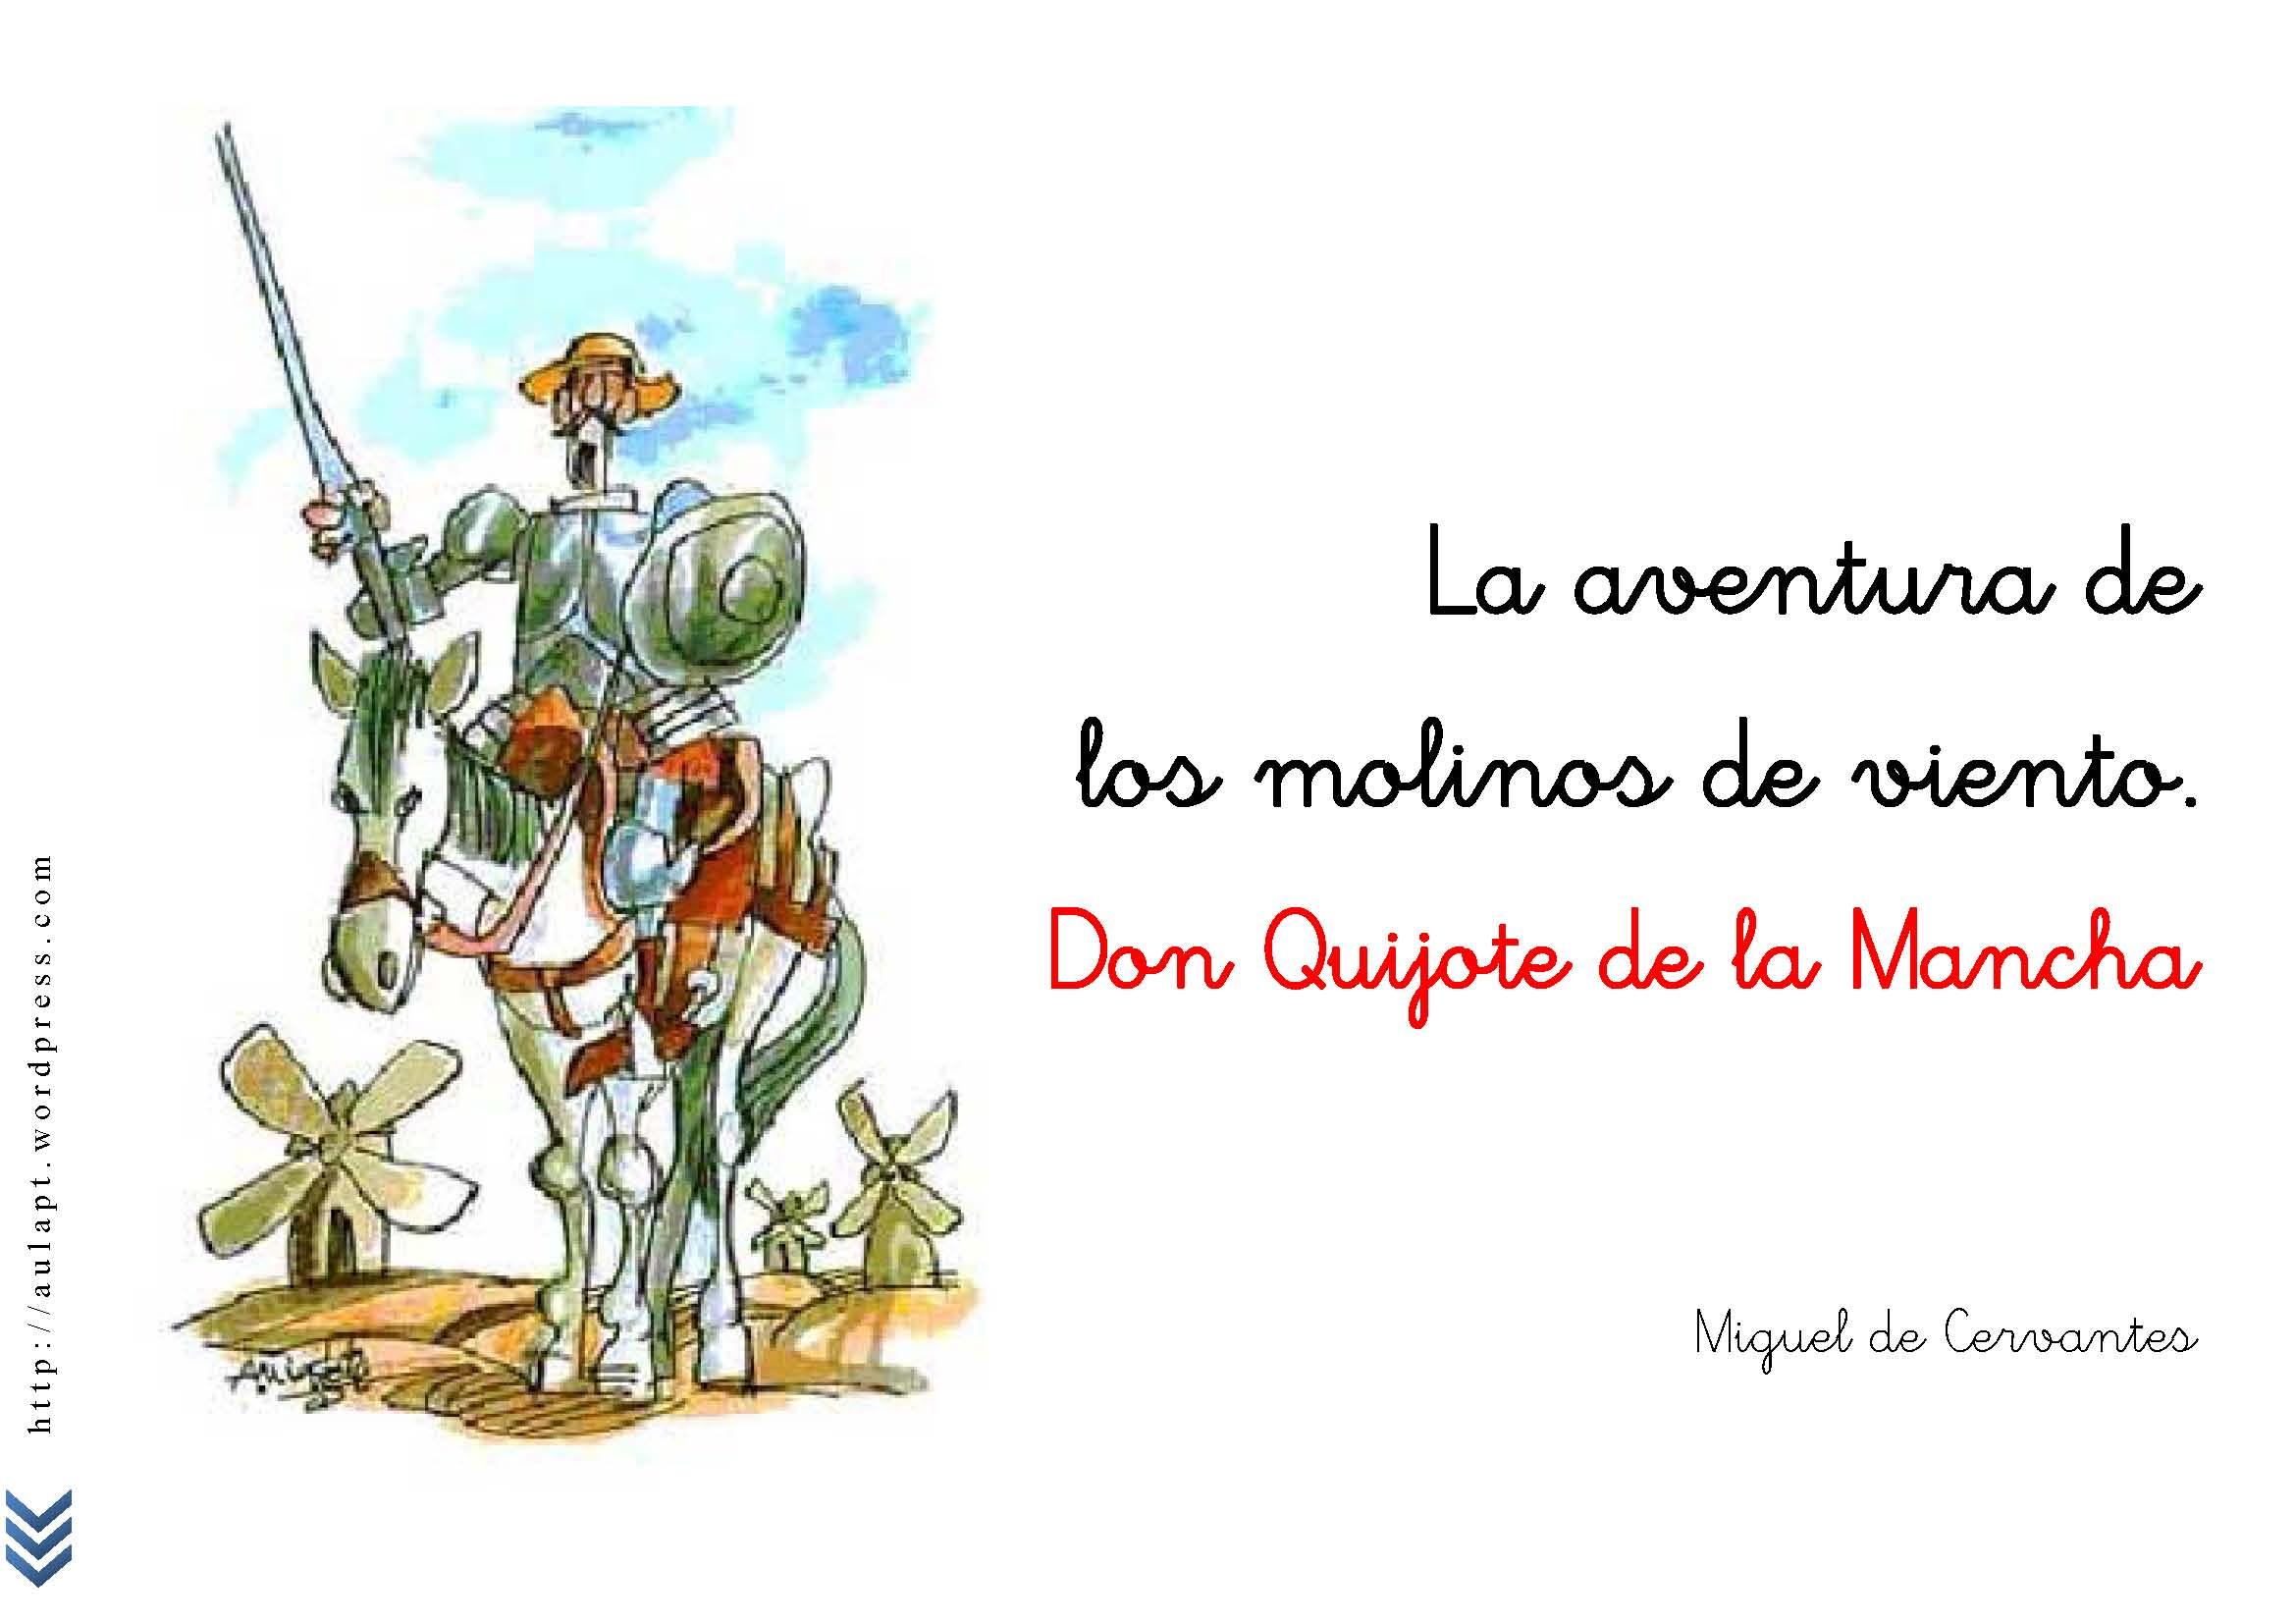 https://aulapt.files.wordpress.com/2009/08/don-quijote-y-los-molinos_page_11.jpg